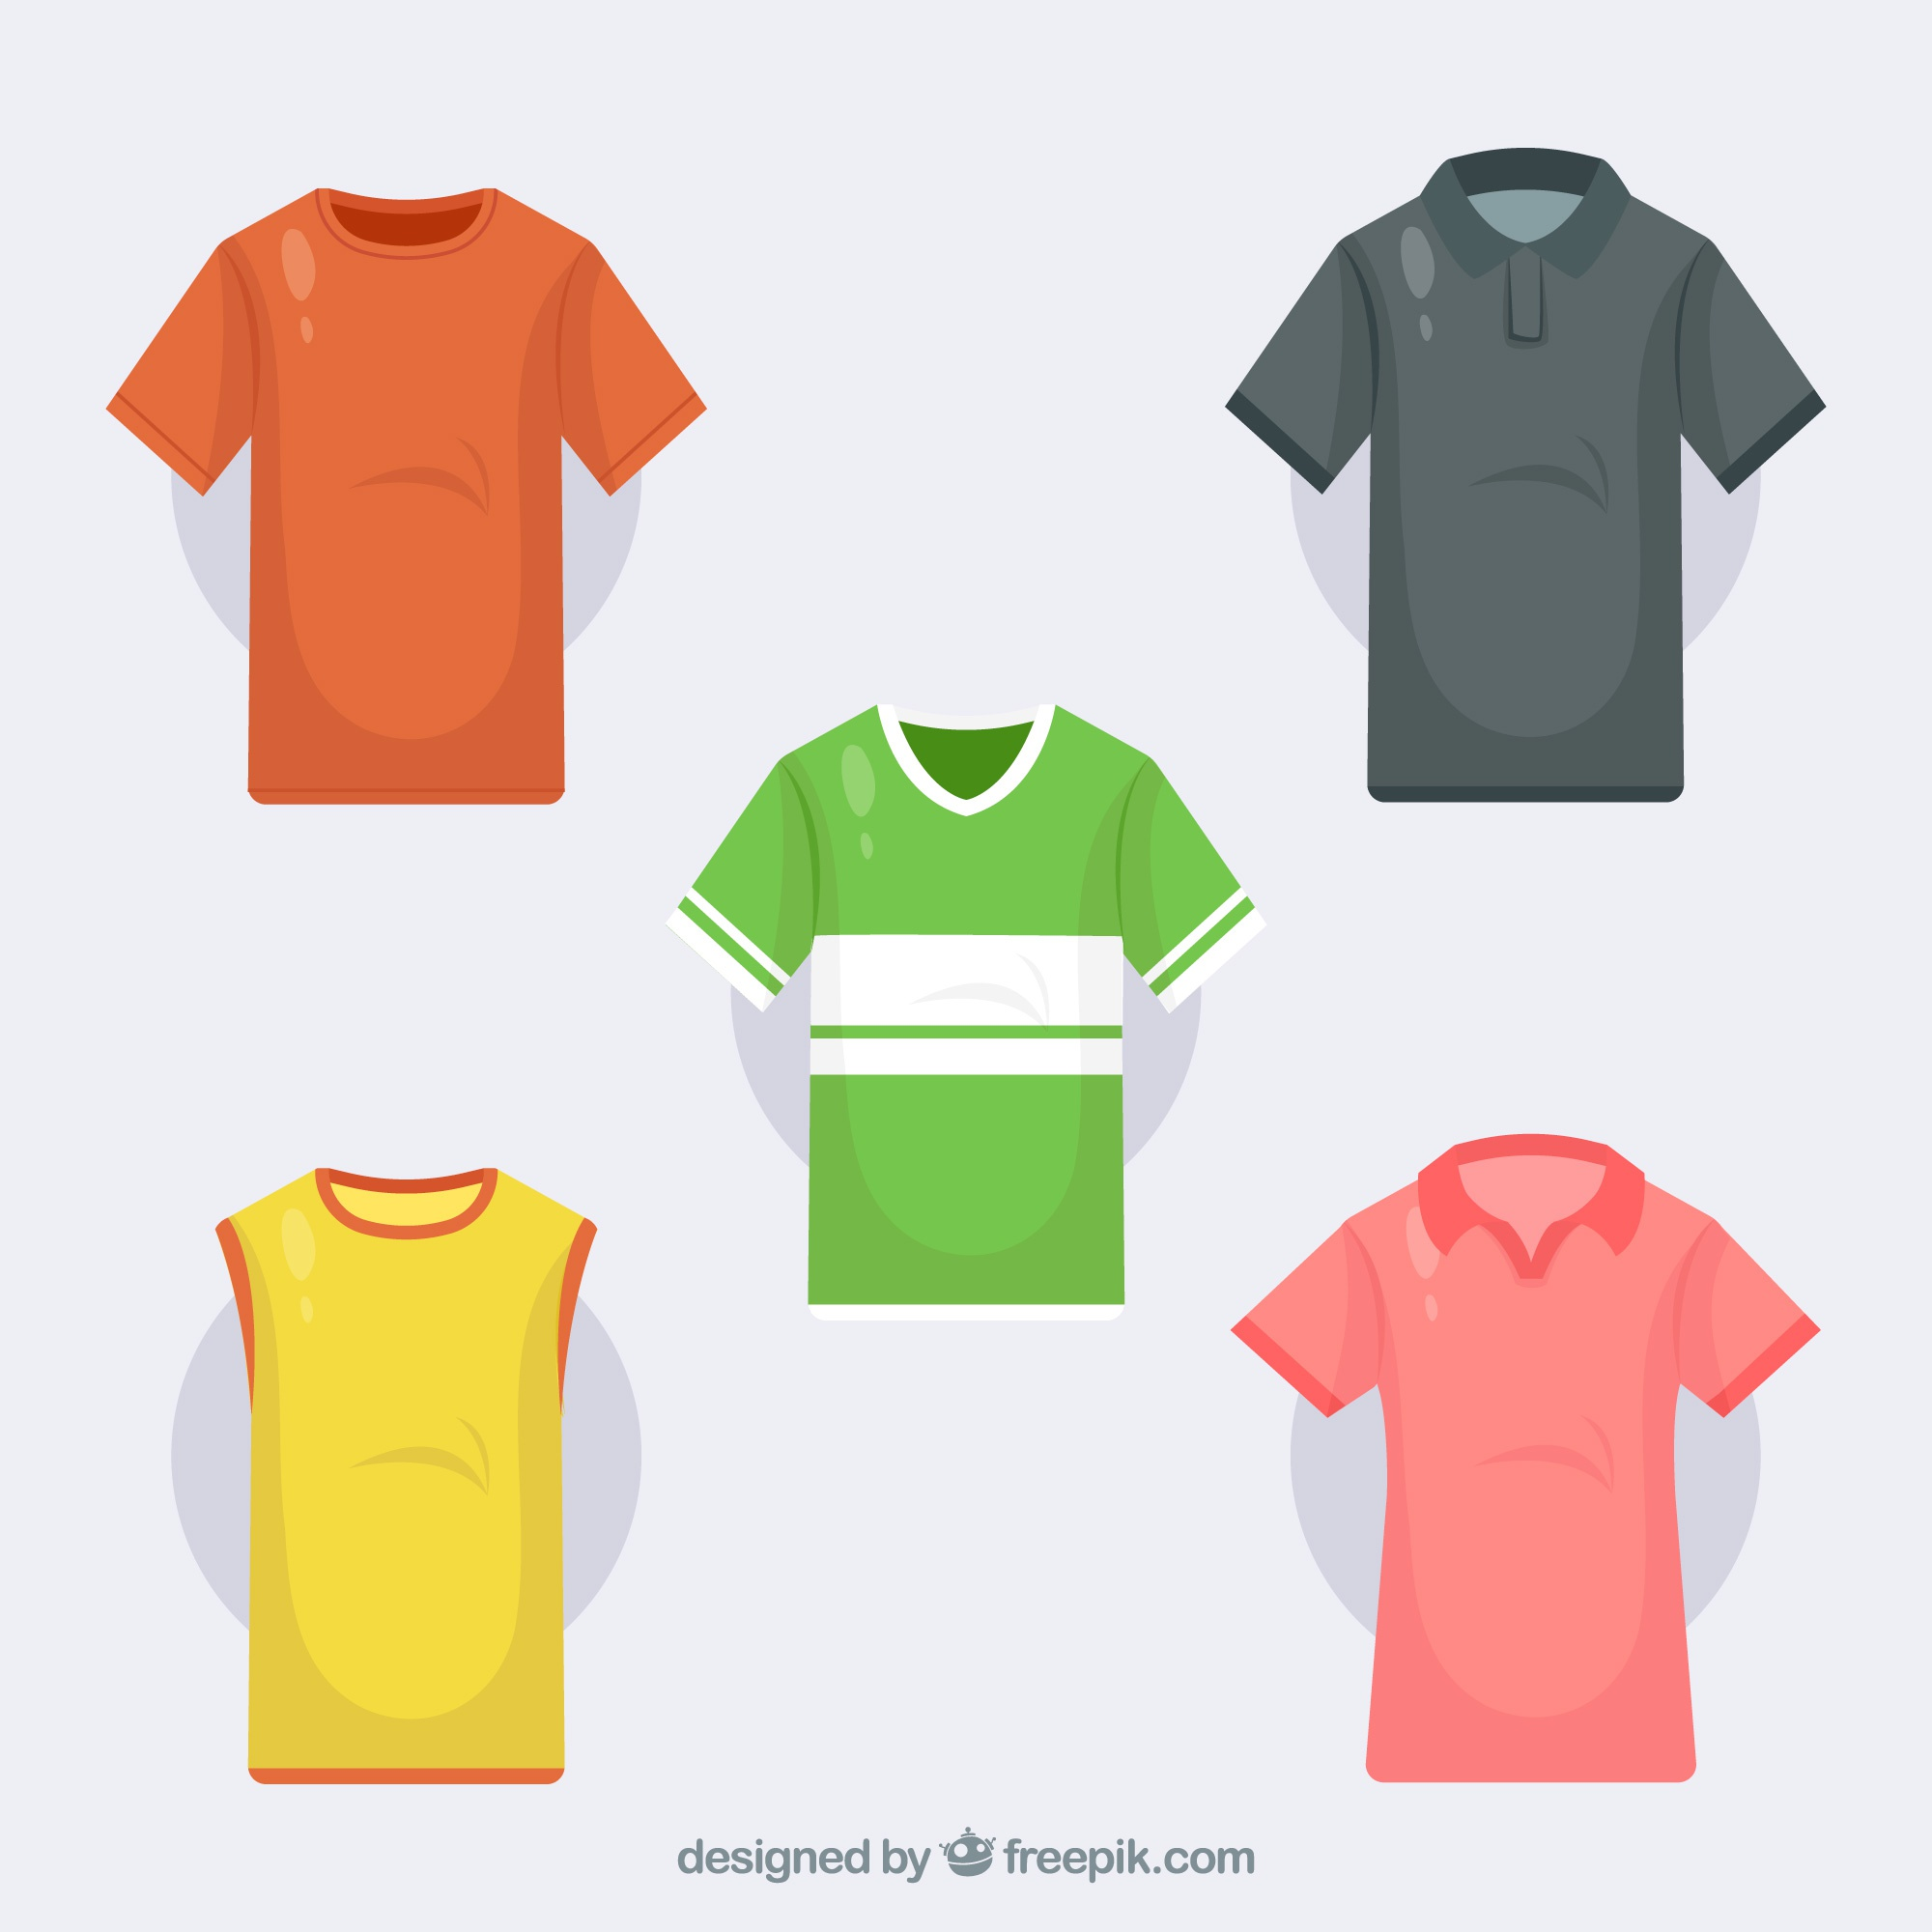 T-shirts collection in different colors